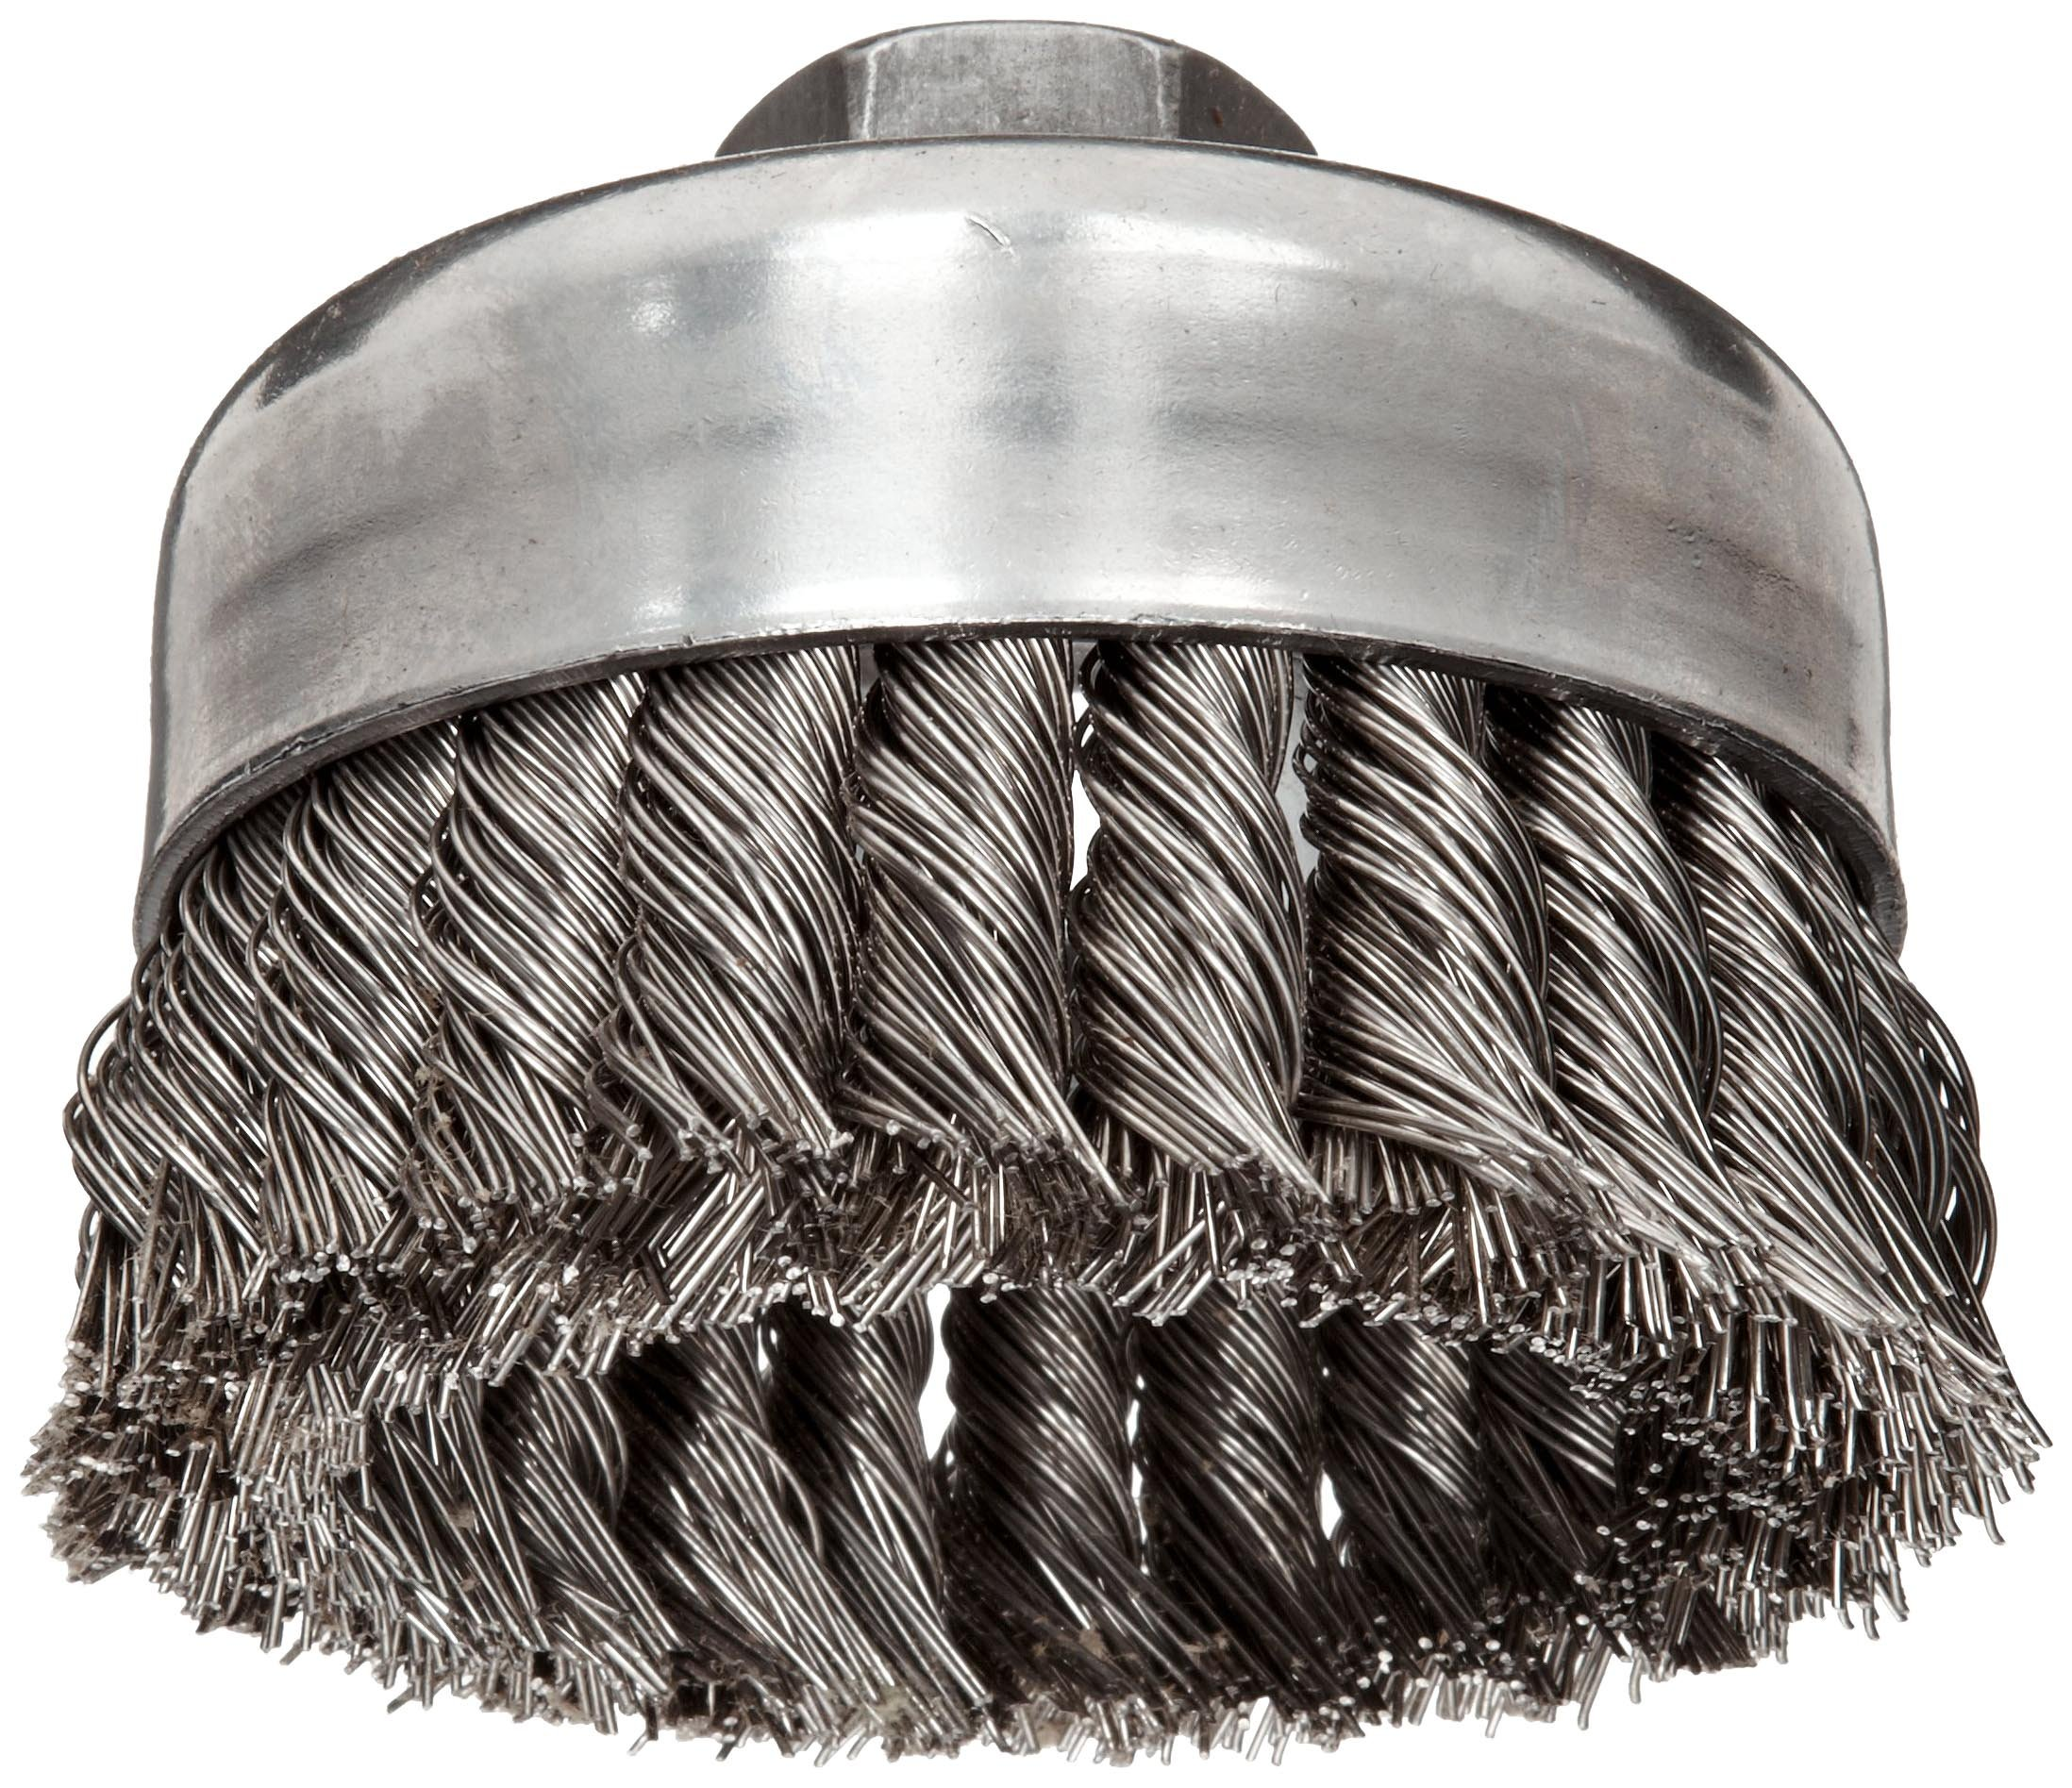 Weiler Wire Cup Brush, Threaded Hole, Stainless Steel 302, Partial Twist Knotted, 4'' Diameter, 0.023'' Wire Diameter, 5/8''-11 Arbor, 1-1/4'' Bristle Length, 9000 rpm (Pack of 1)